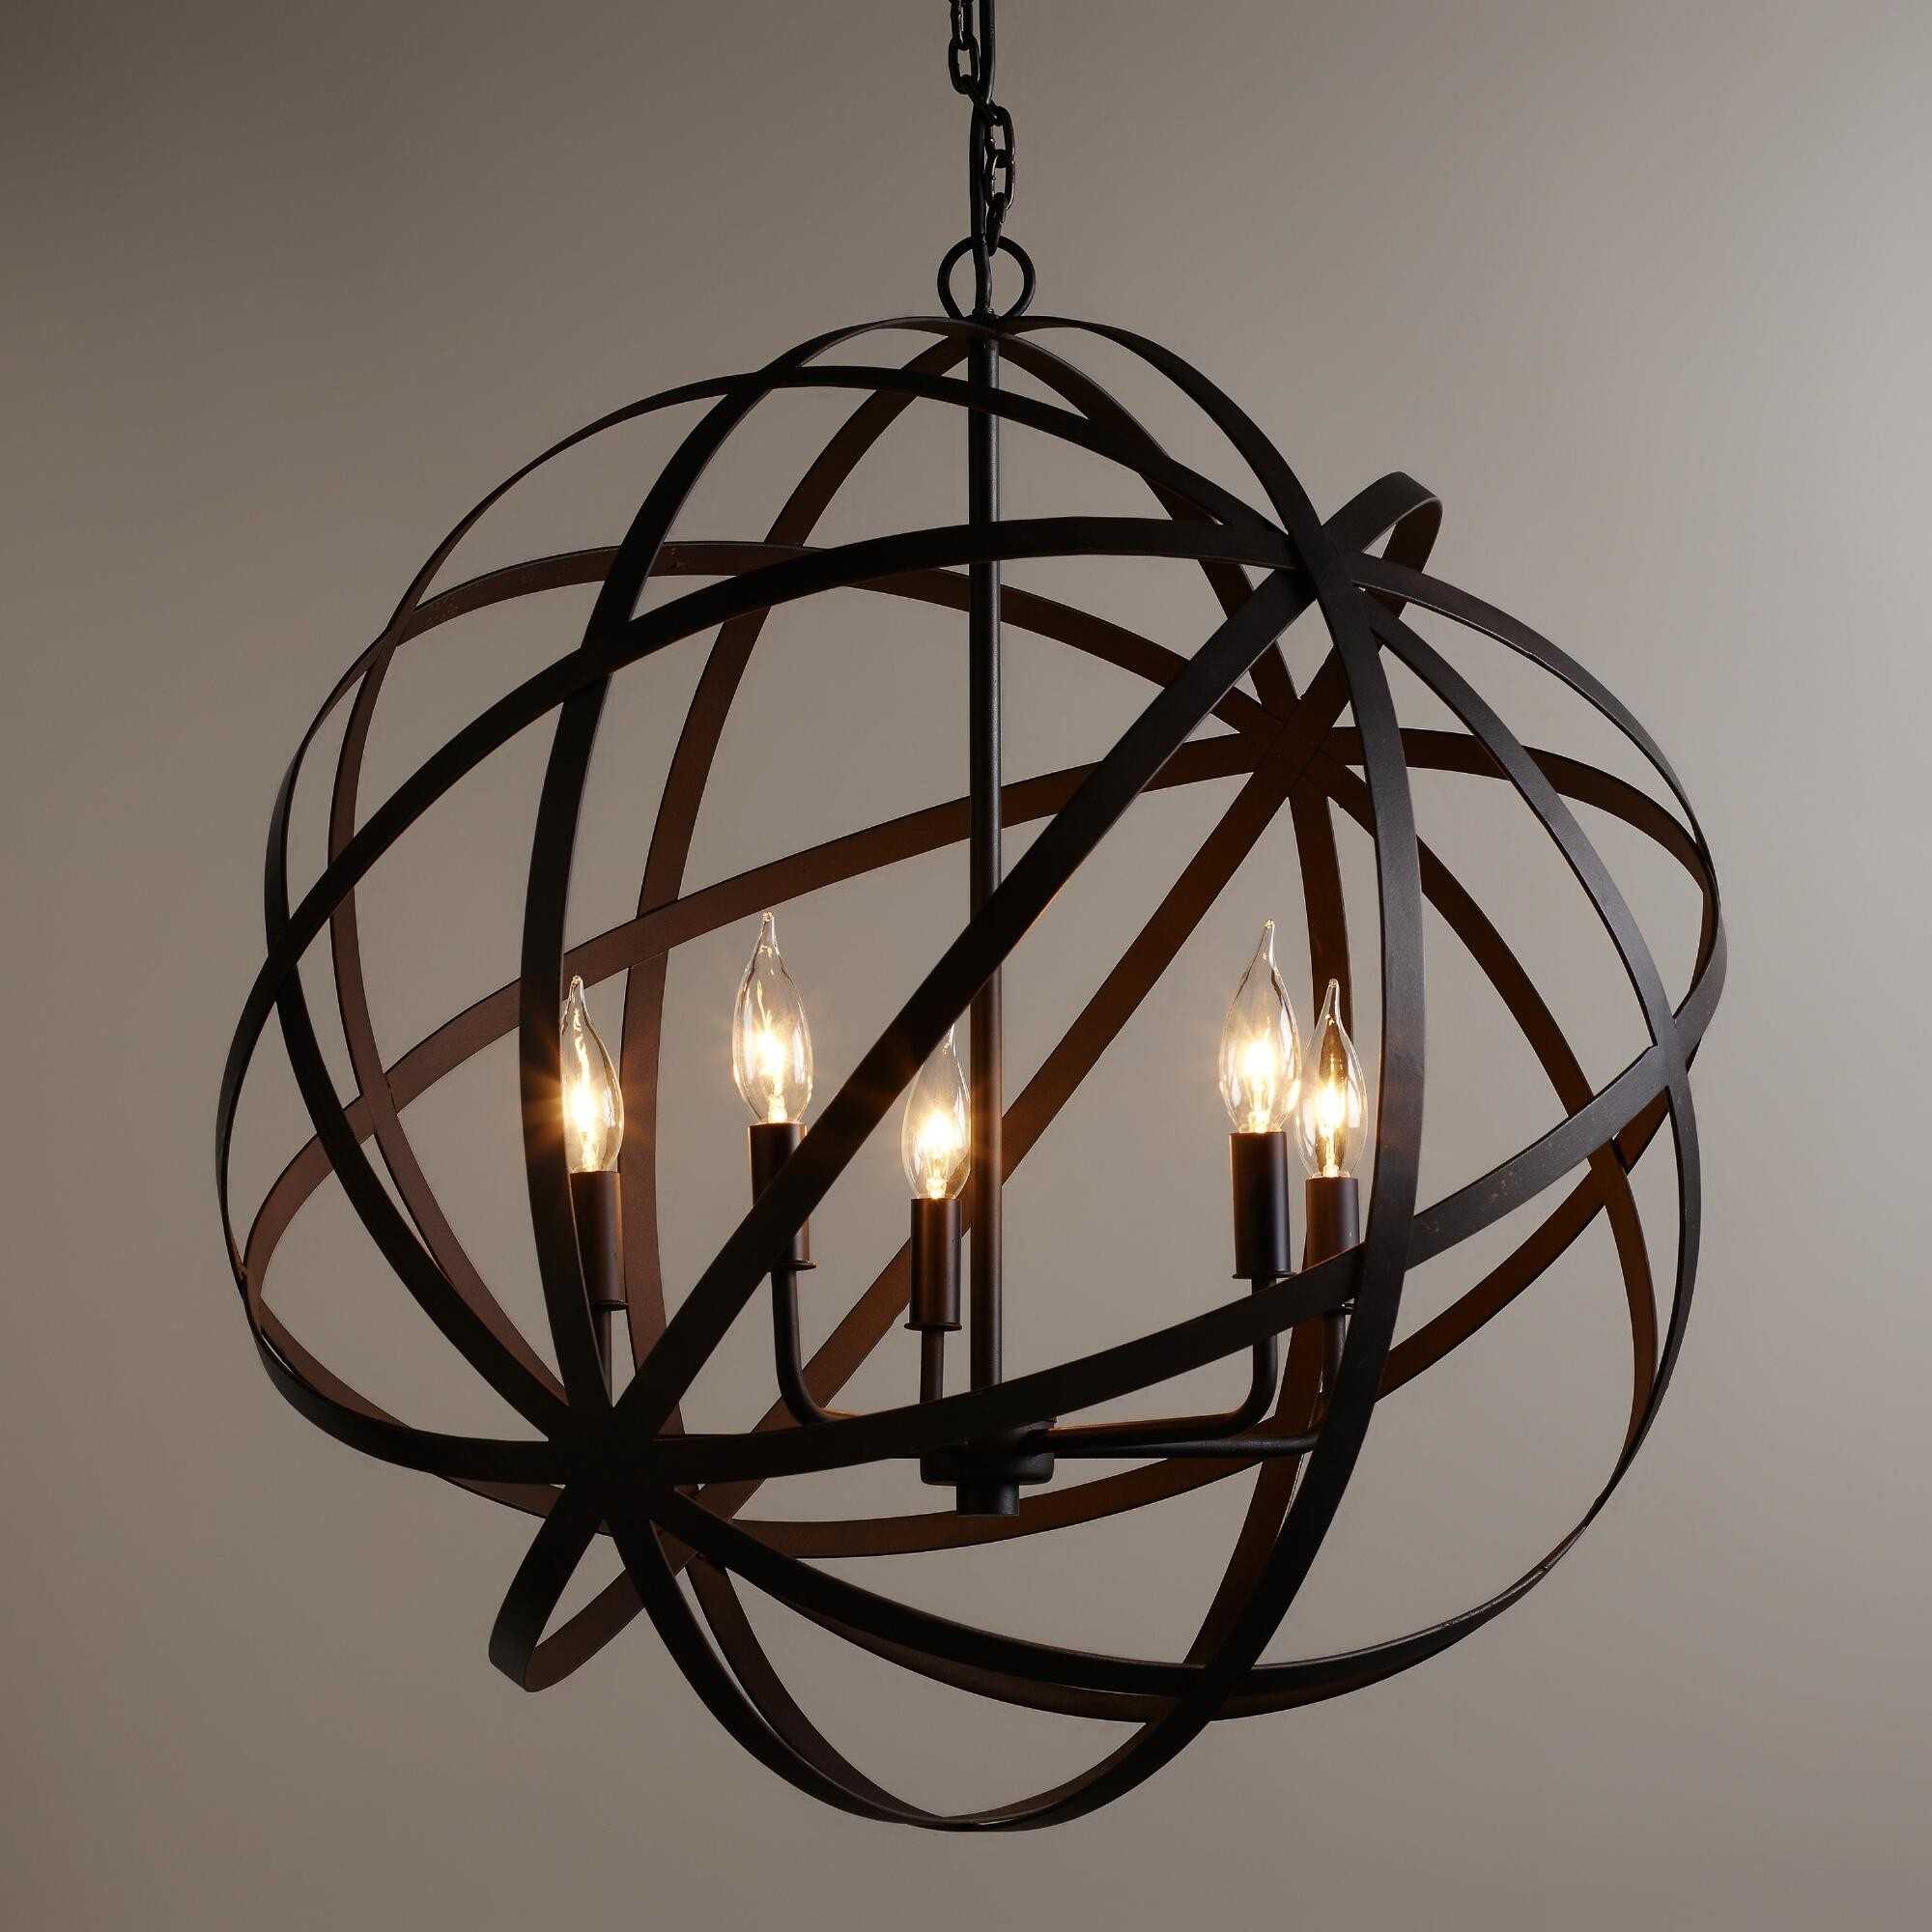 Chandeliers Design : Marvelous Extra Large Outdoor Chandeliers Lamp Regarding Latest Extra Large Outdoor Hanging Lights (View 11 of 20)